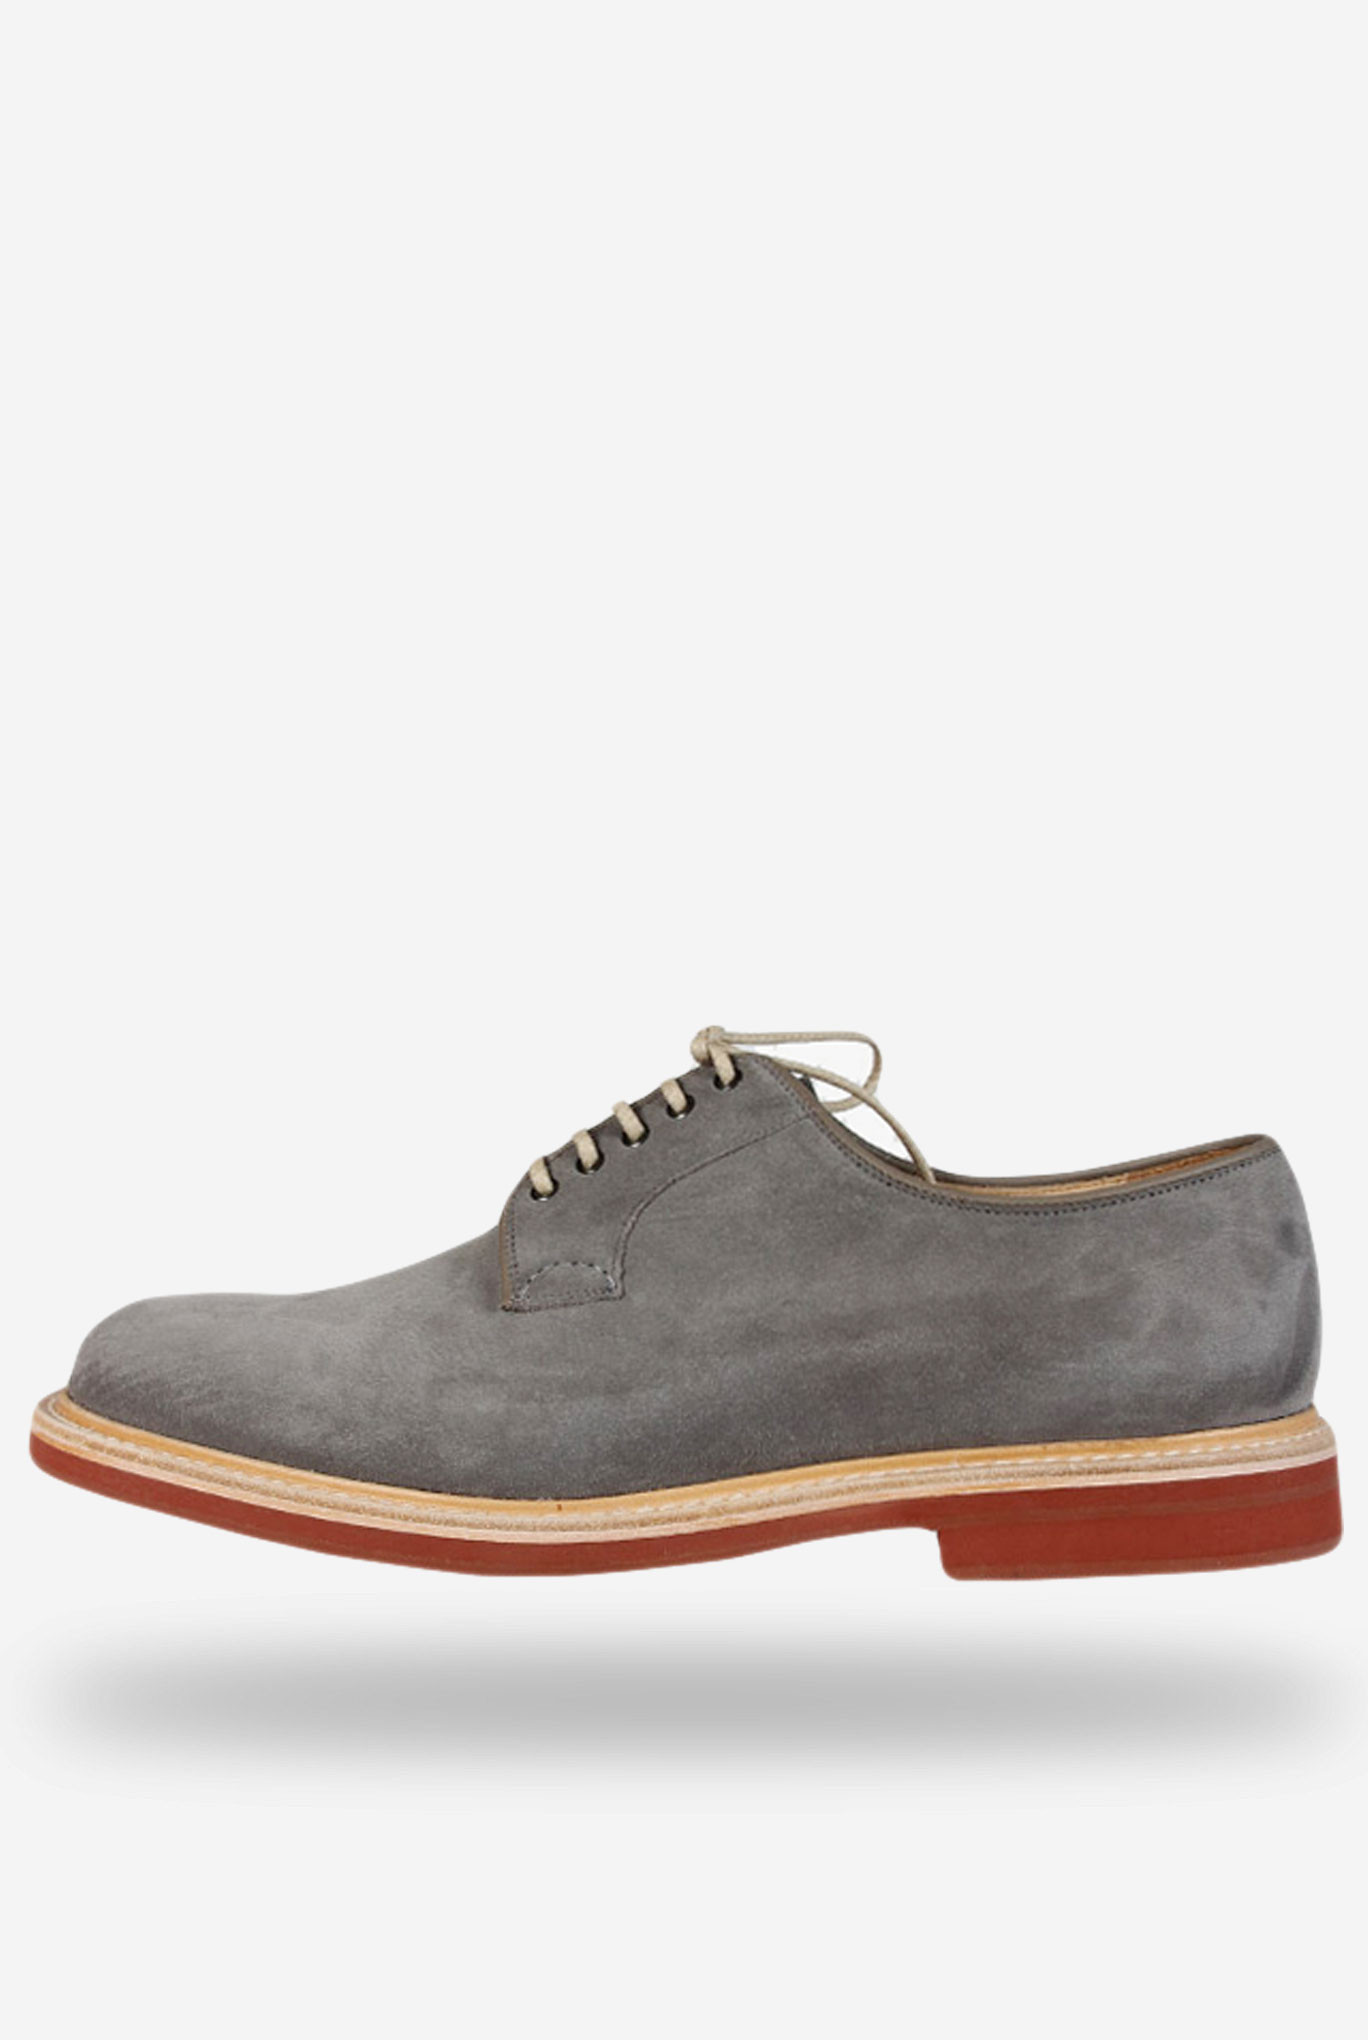 CHAUSSURE CHURCH'S GRISE FULLBECK ARMY GREY